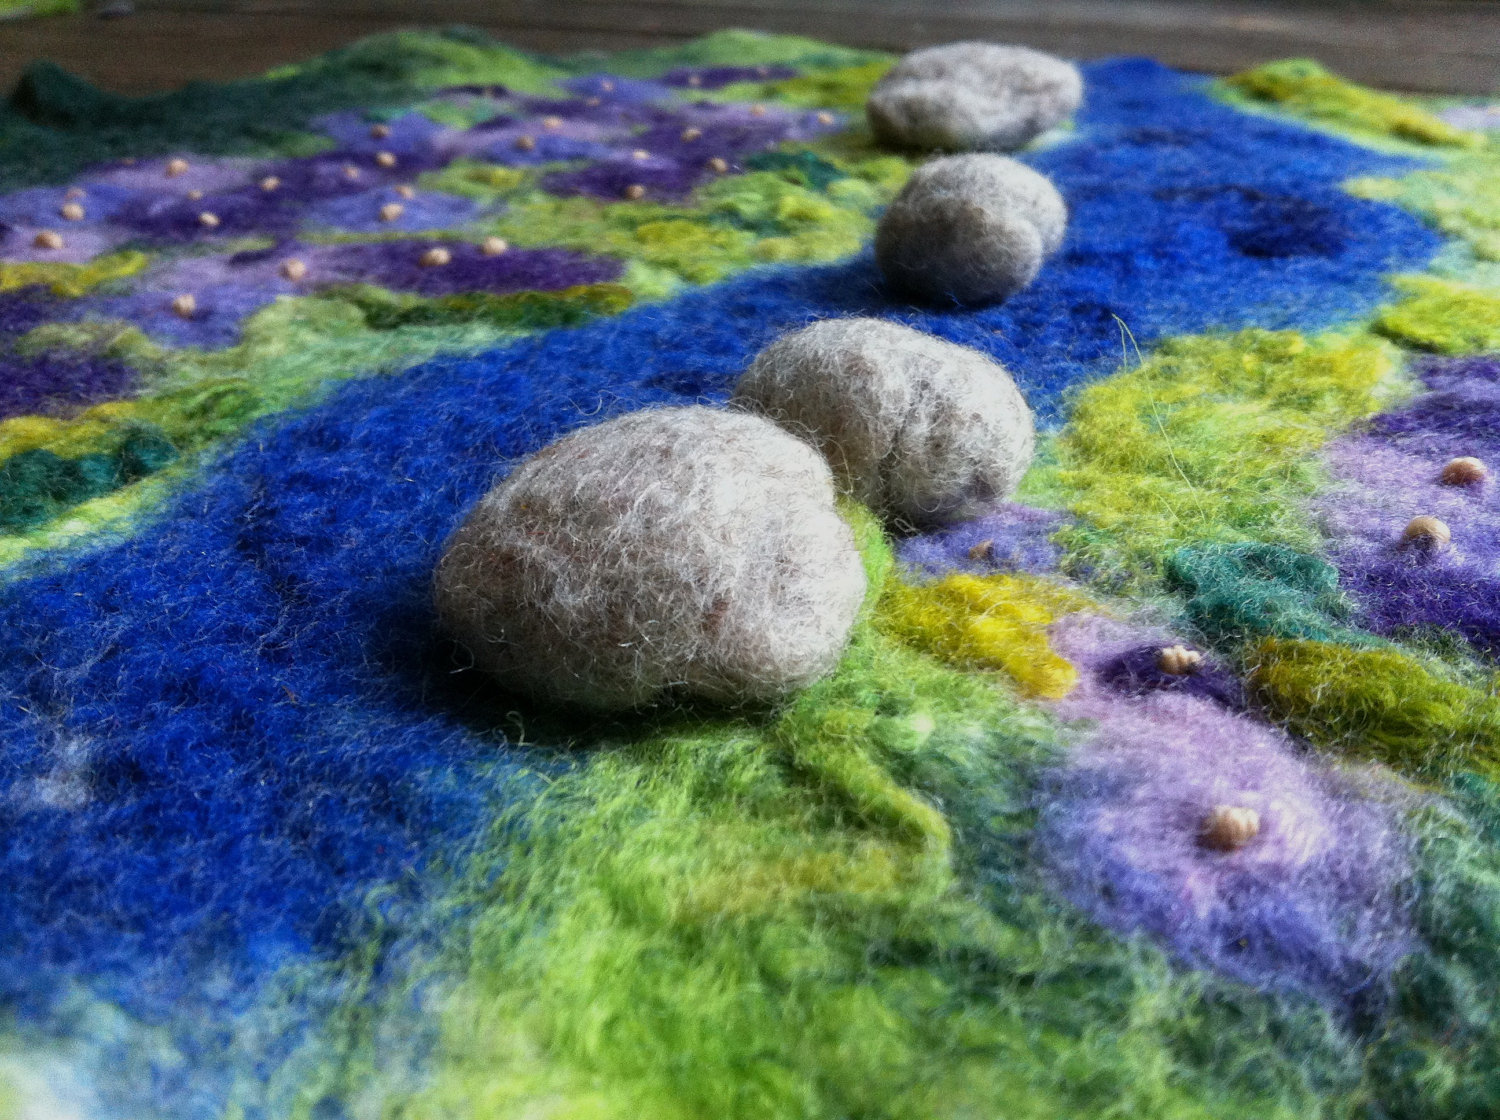 masajesaf on Etsy. Bumpy river rocks by lavendar stream flowers